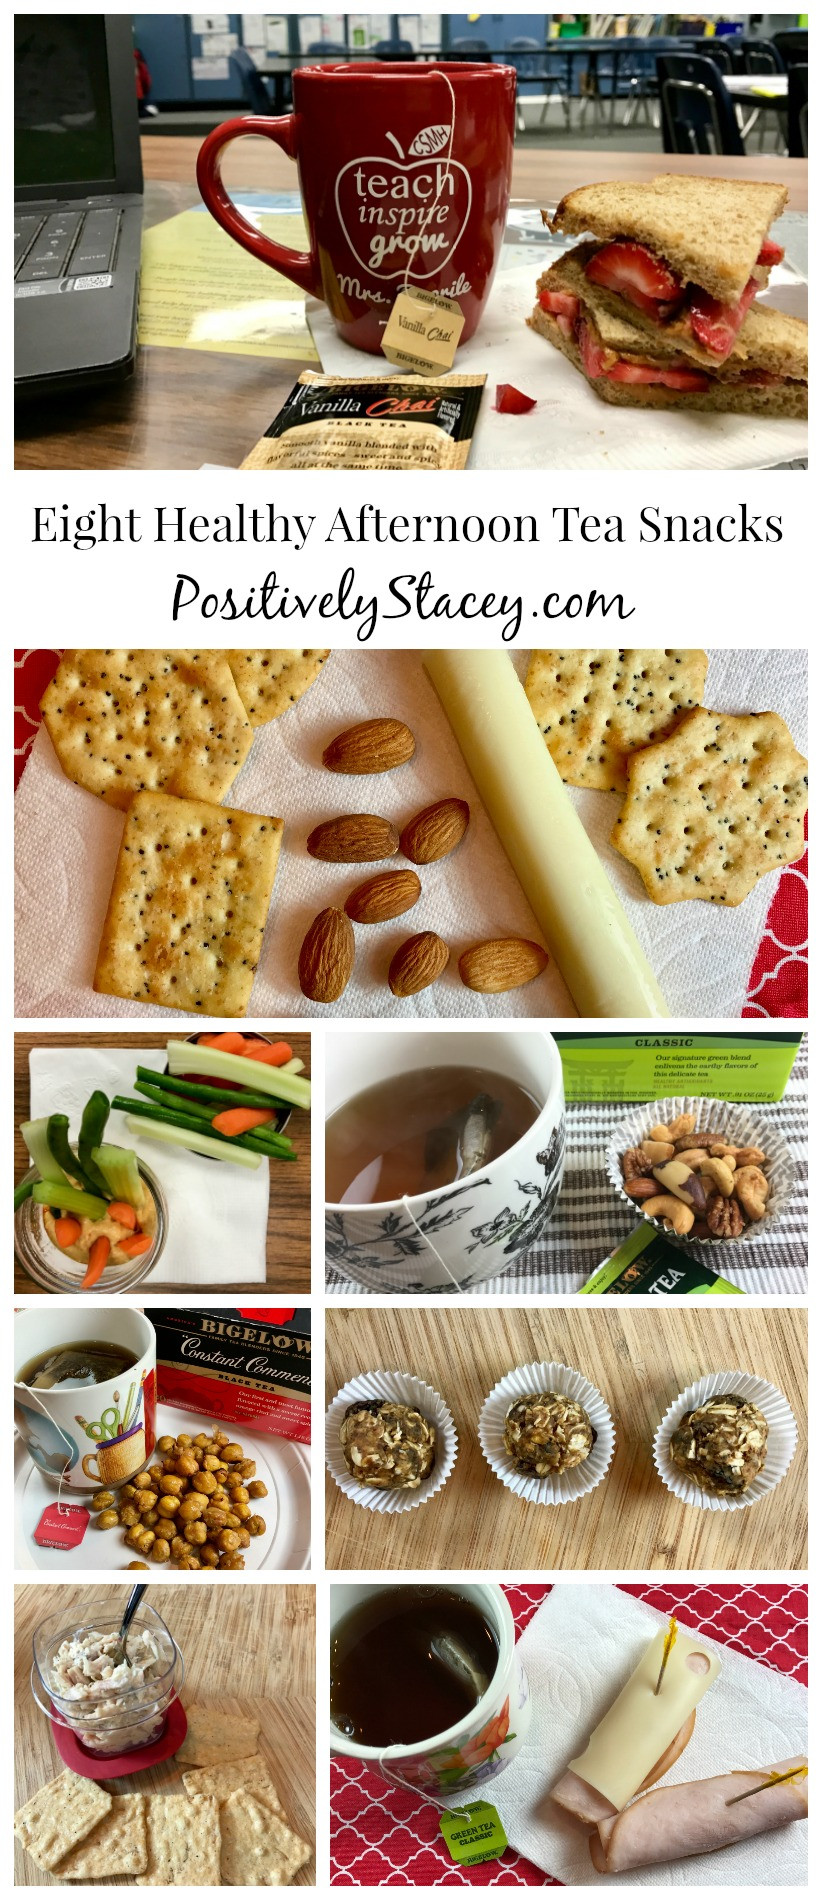 Healthy Afternoon Snacks For Work  Eight Healthy Afternoon Tea Snacks Positively Stacey